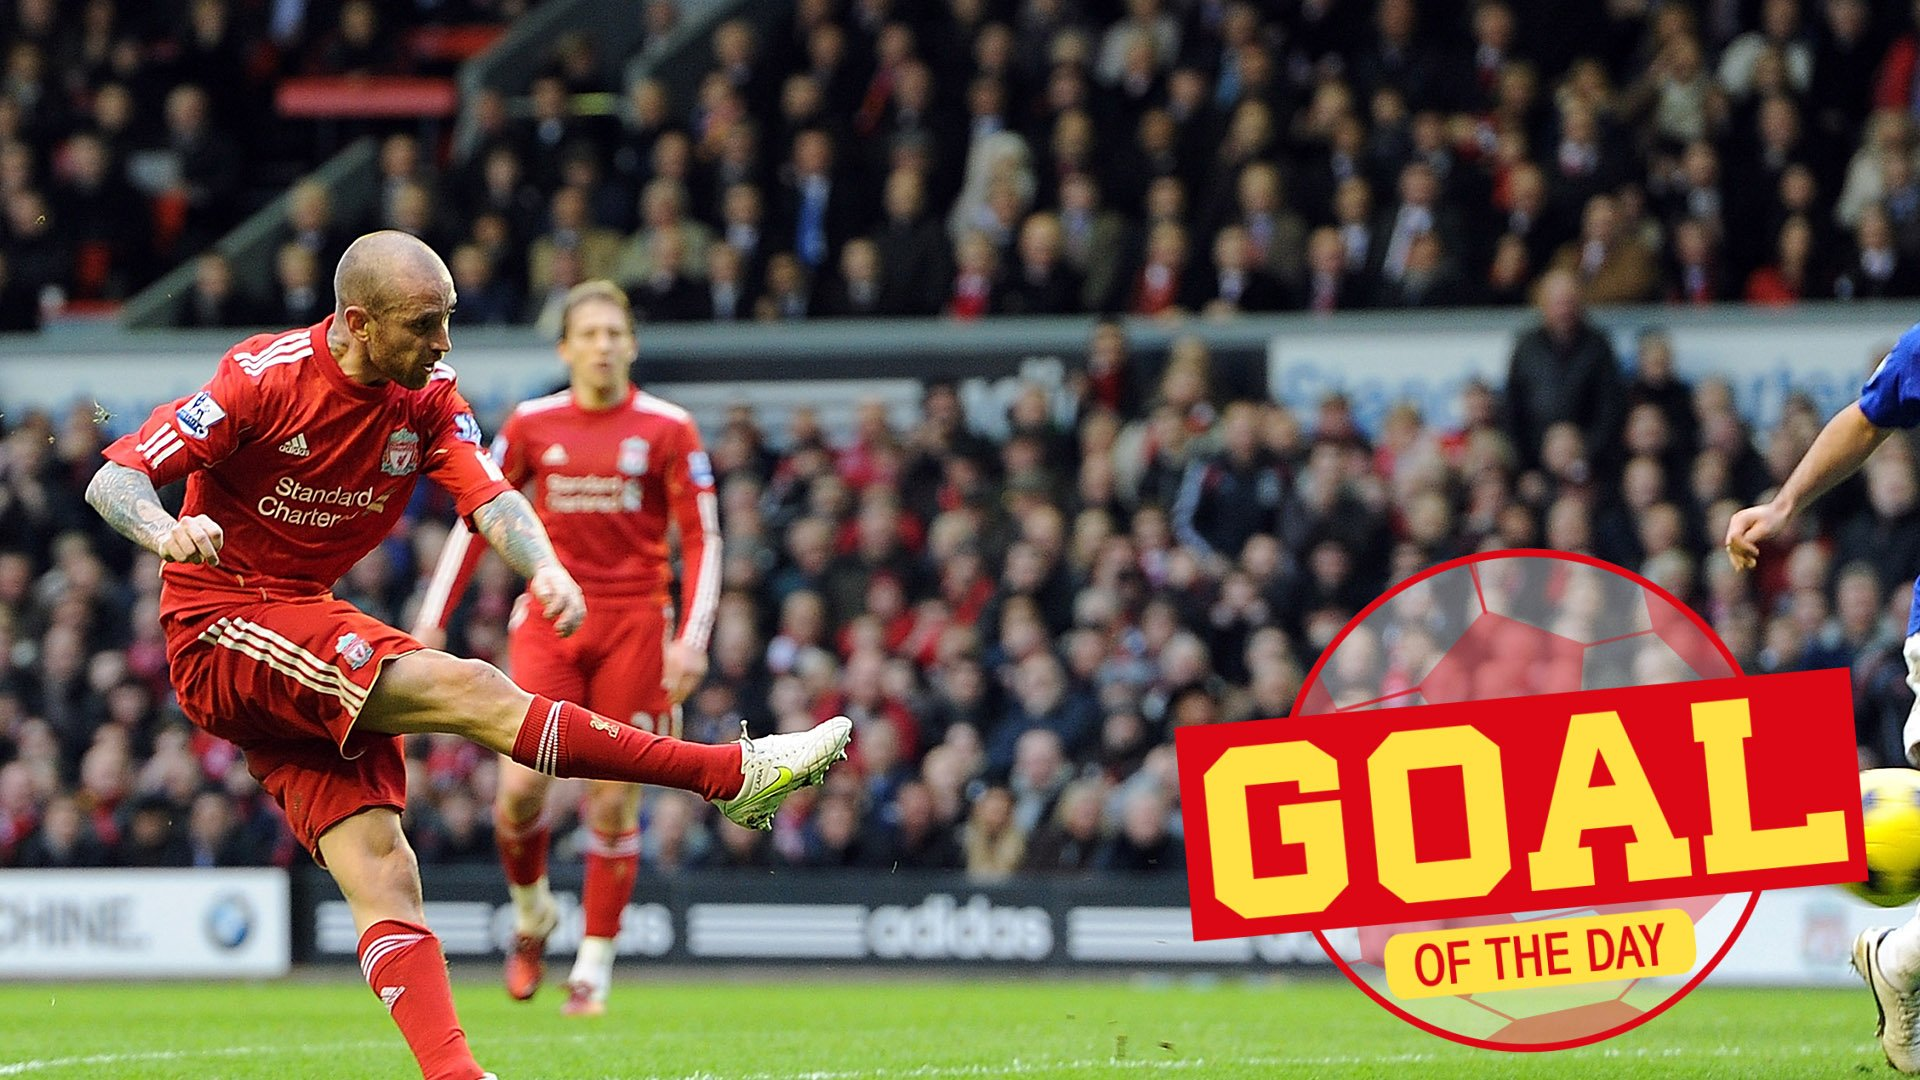 ❌ ❌ ✅  🗓 A sweet, sweet strike from @OficialMeireles #onthisday in 2011... https://t.co/iUg2iWQmrX